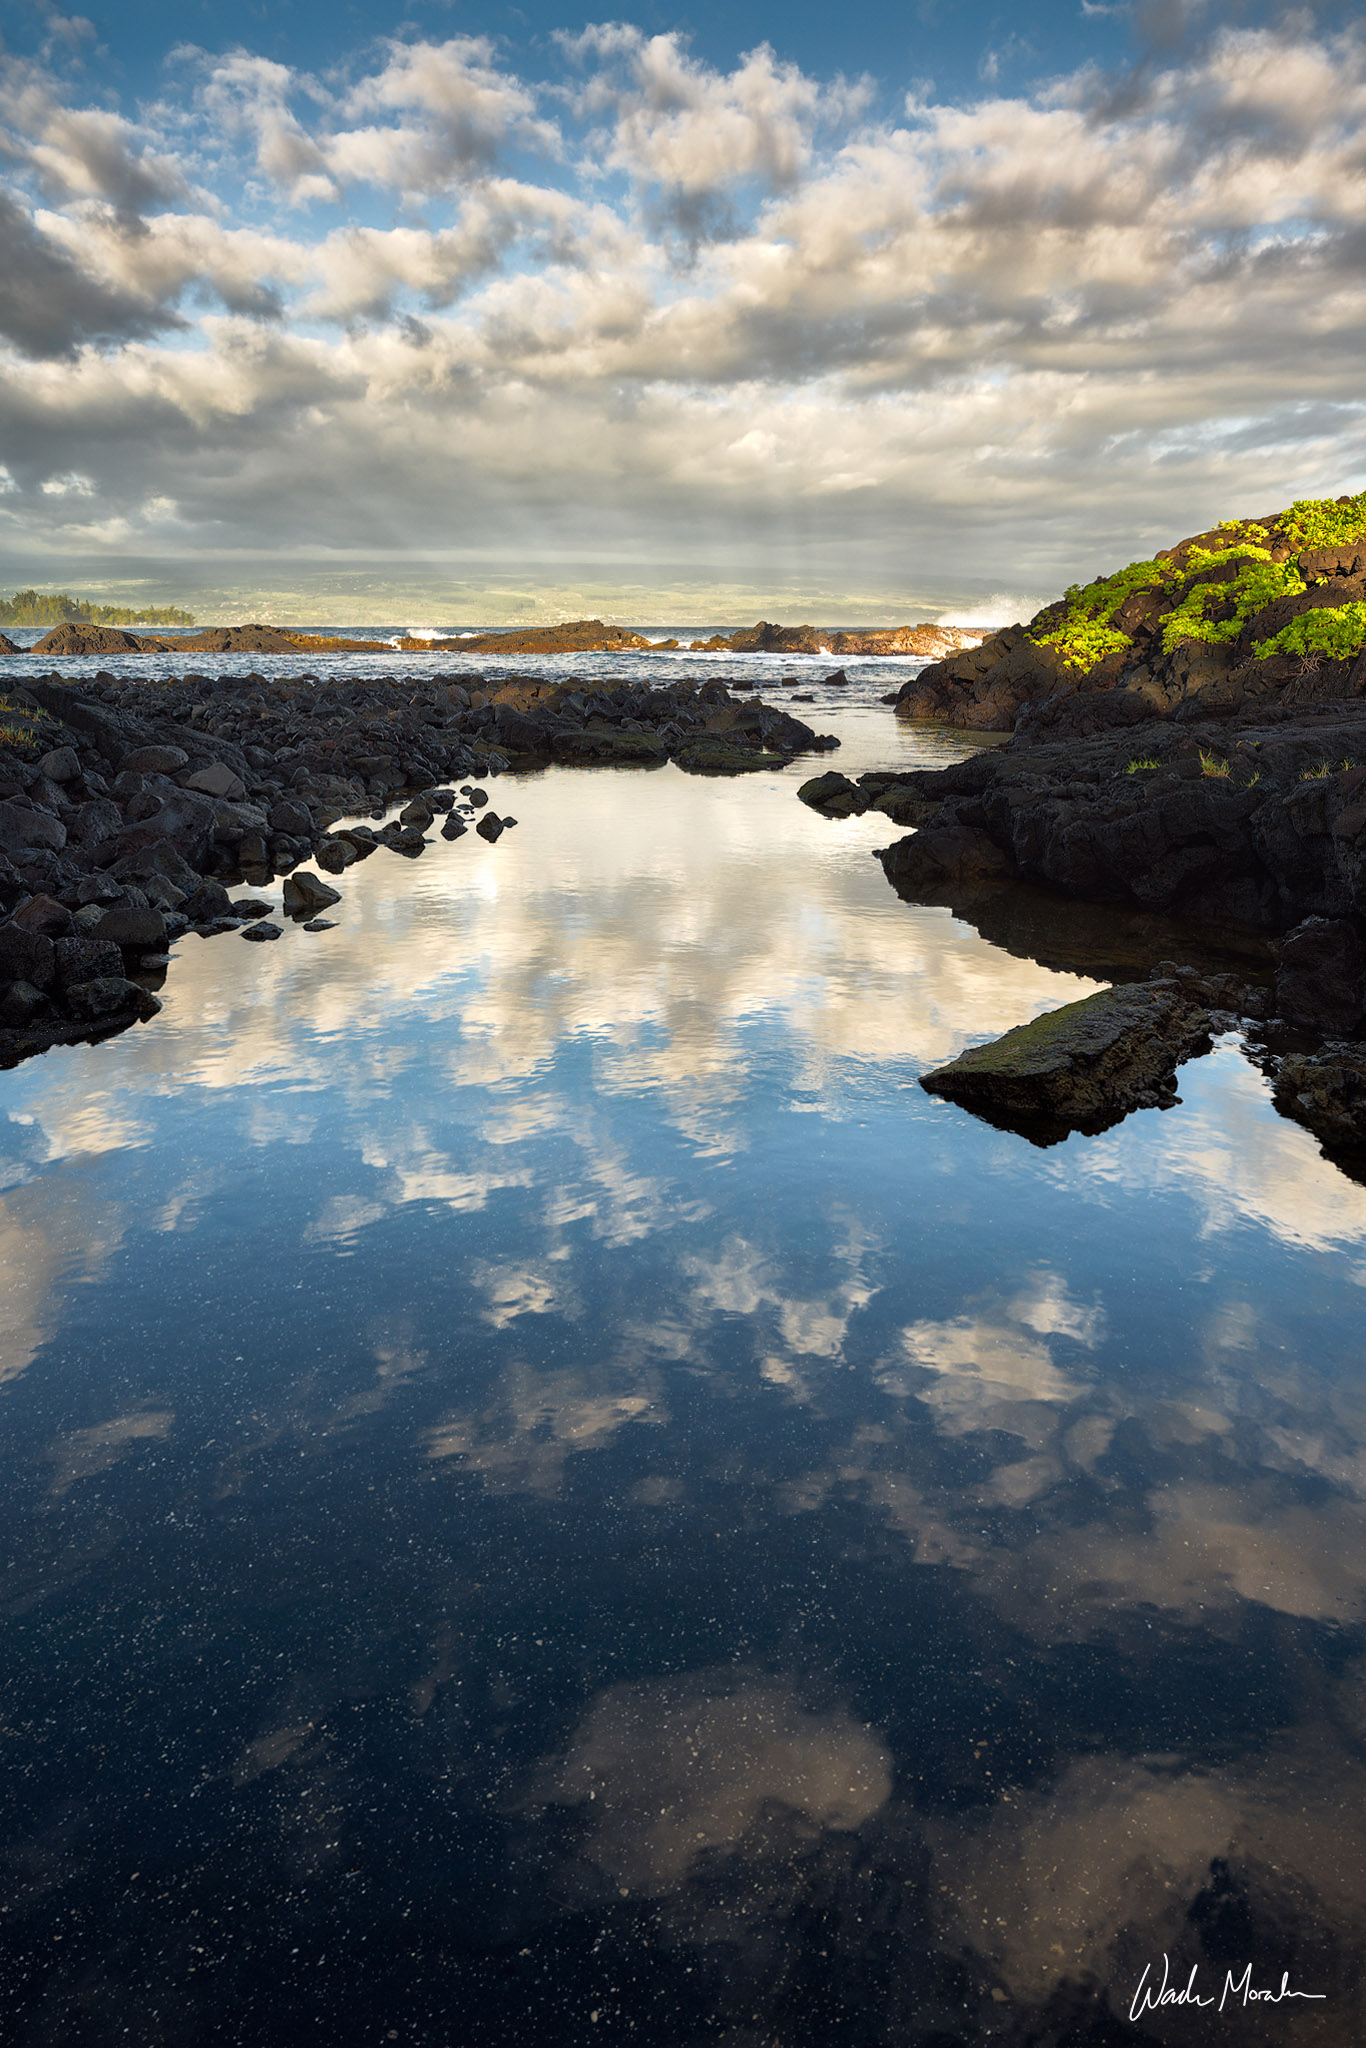 Richardson Beach is located in Hilo on the Big Island of Hawaii. It is incredibly scenic with its channels of lava rock and view...